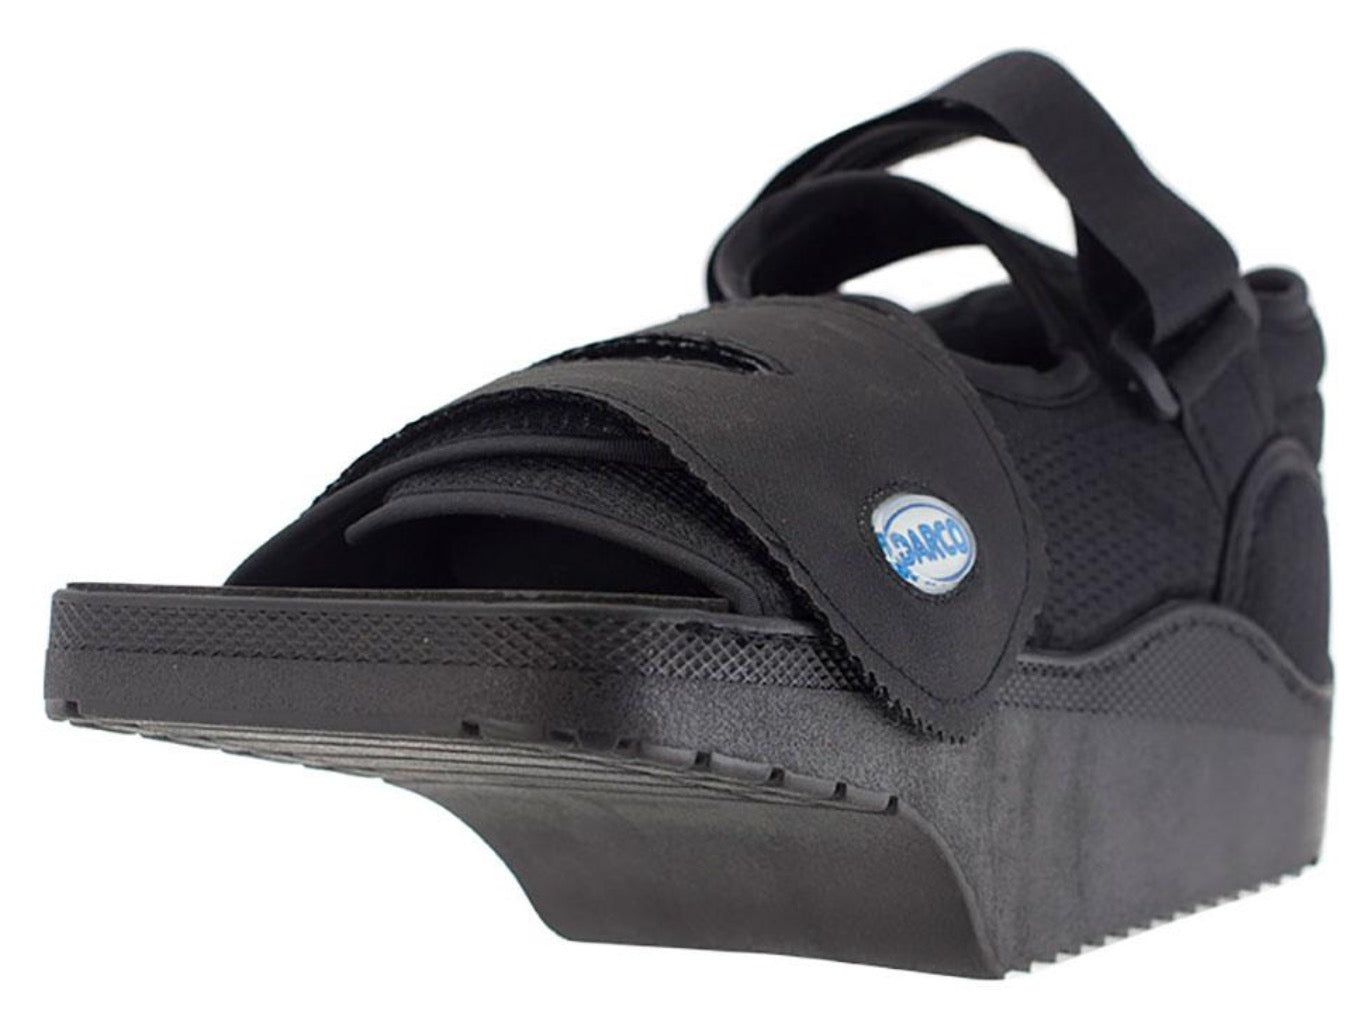 ORTHO WEDGE SHOE